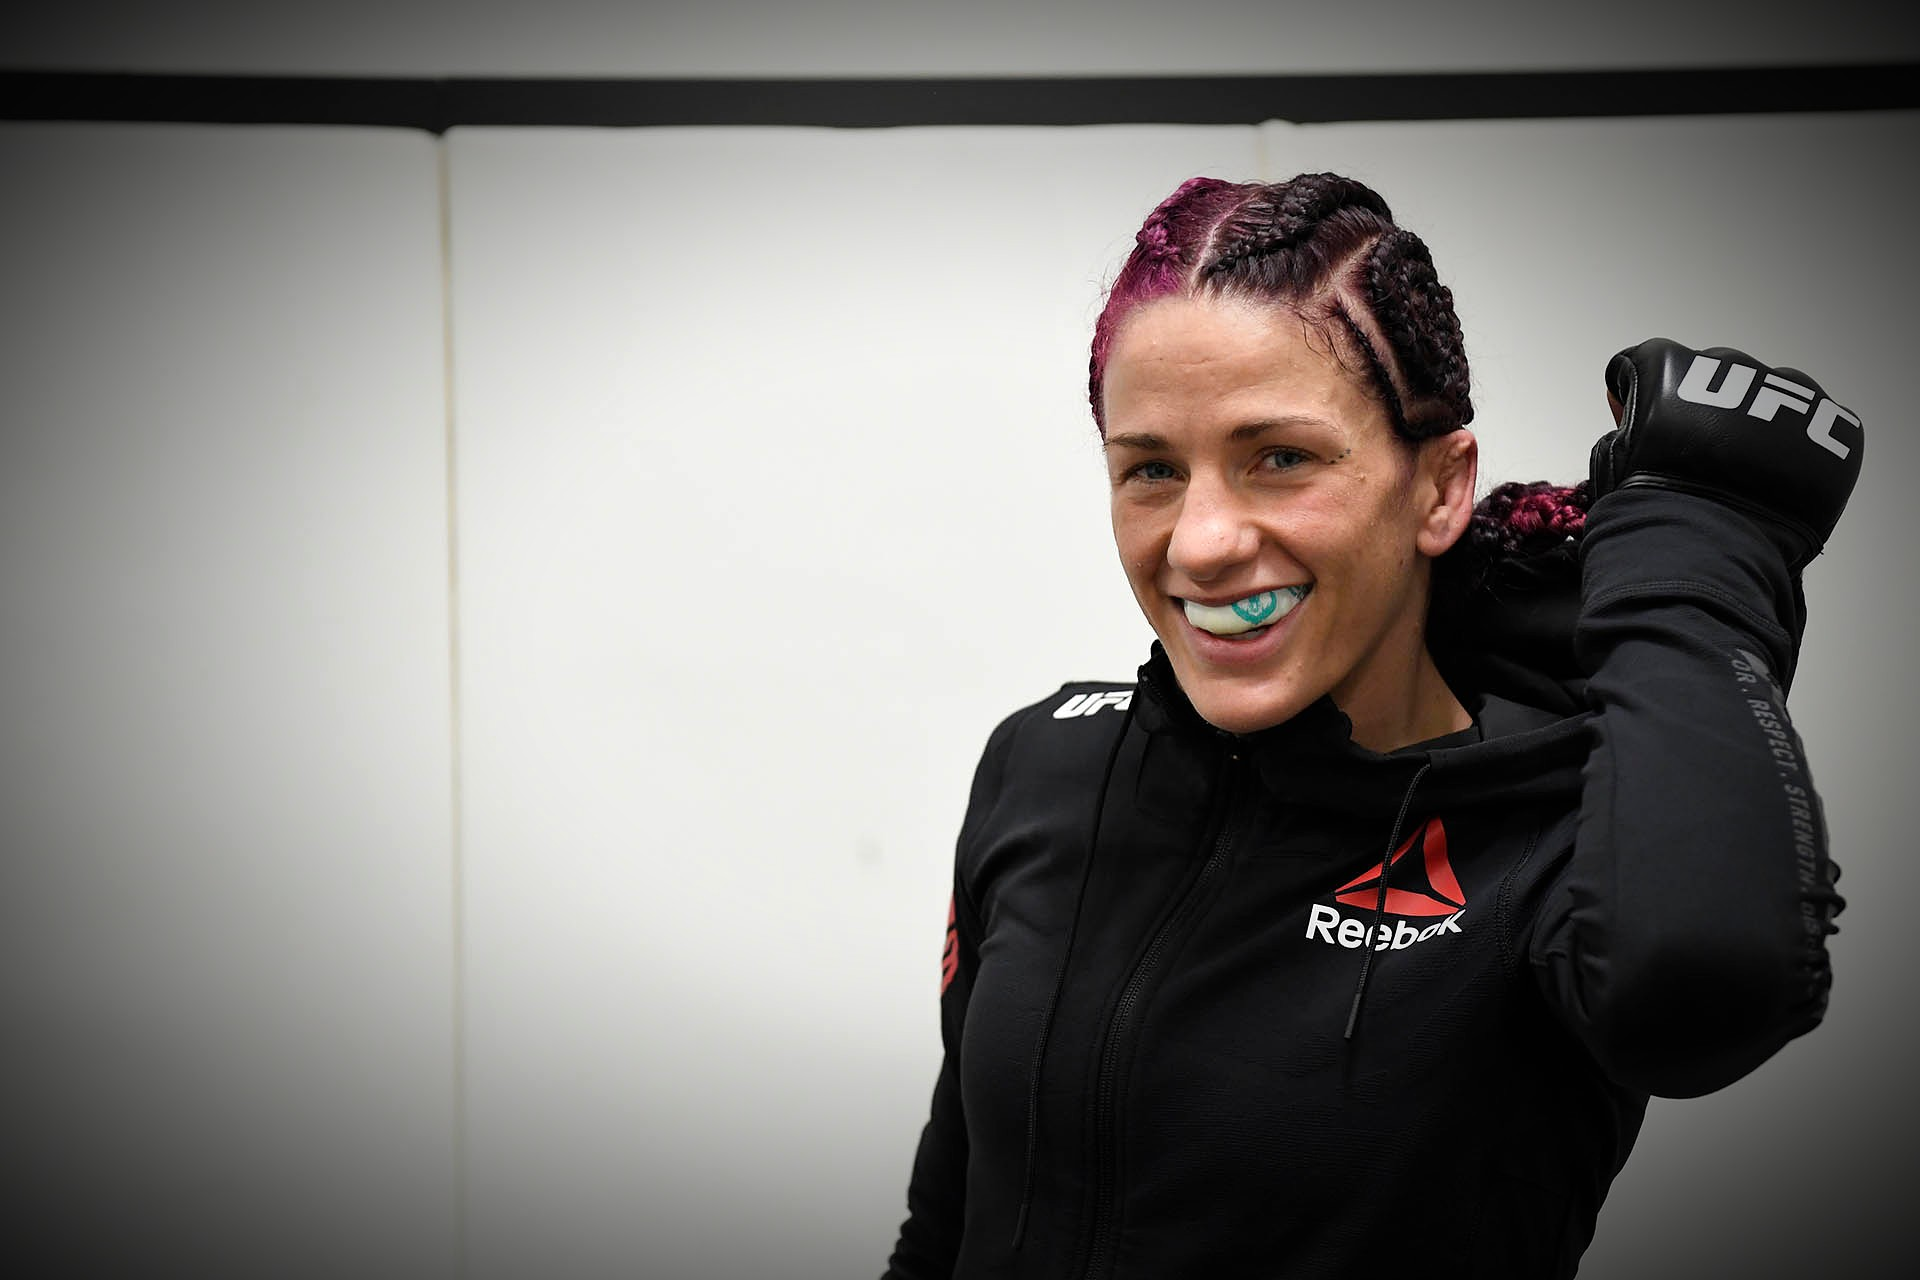 Gina Mazany warms up backstage during the UFC Fight Night at UFC APEX on November 28, 2020 in Las Vegas, Nevada. (Photo by Mike Roach/Zuffa LLC)